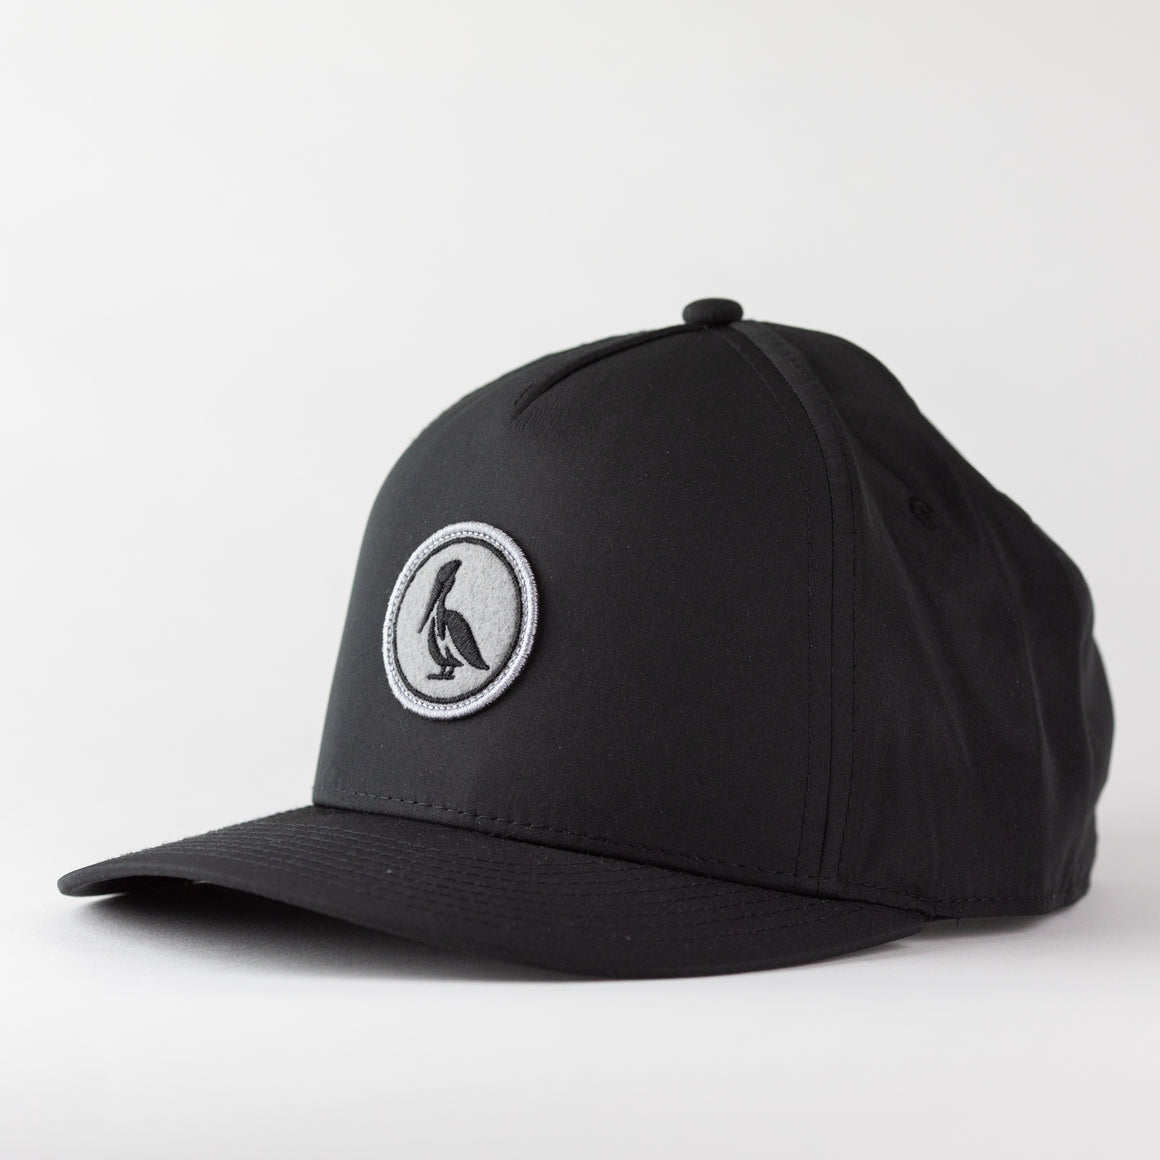 Birdie Performance Hat - Black